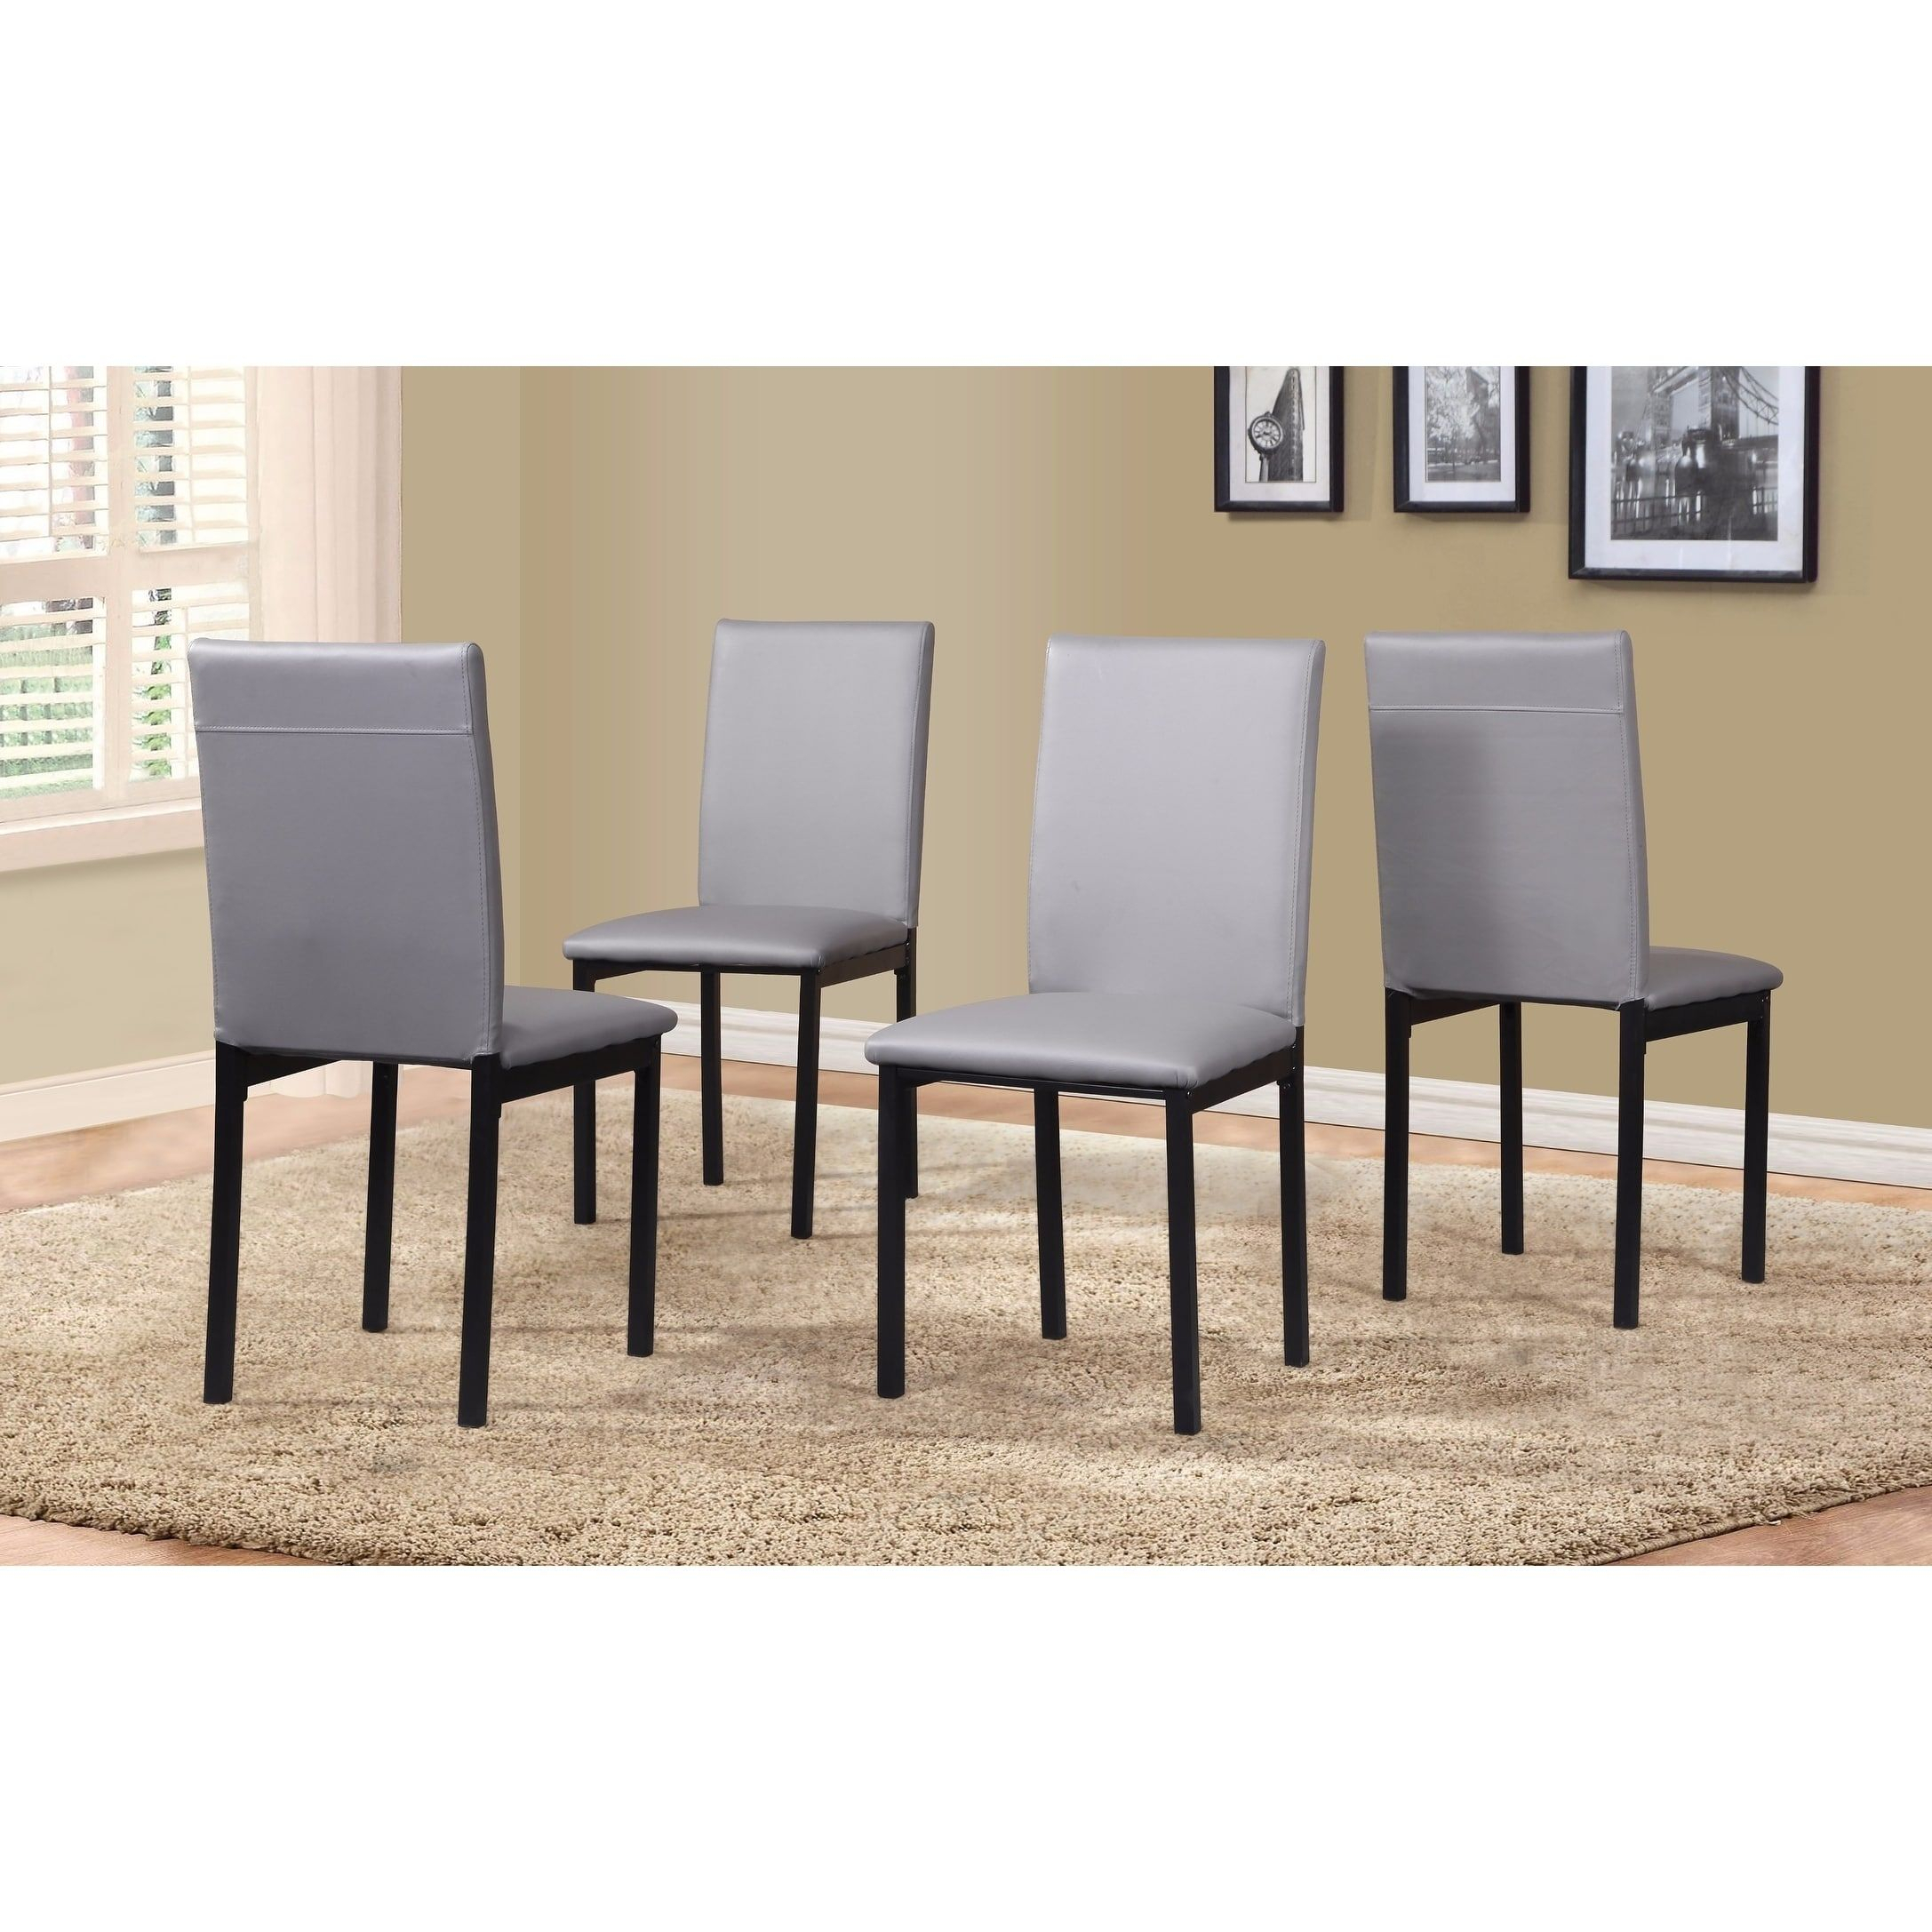 Noyes Faux Leather Seat Metal Frame Black Dining Chairs, Set Of 4 Throughout Most Recently Released Noyes 5 Piece Dining Sets (View 14 of 20)